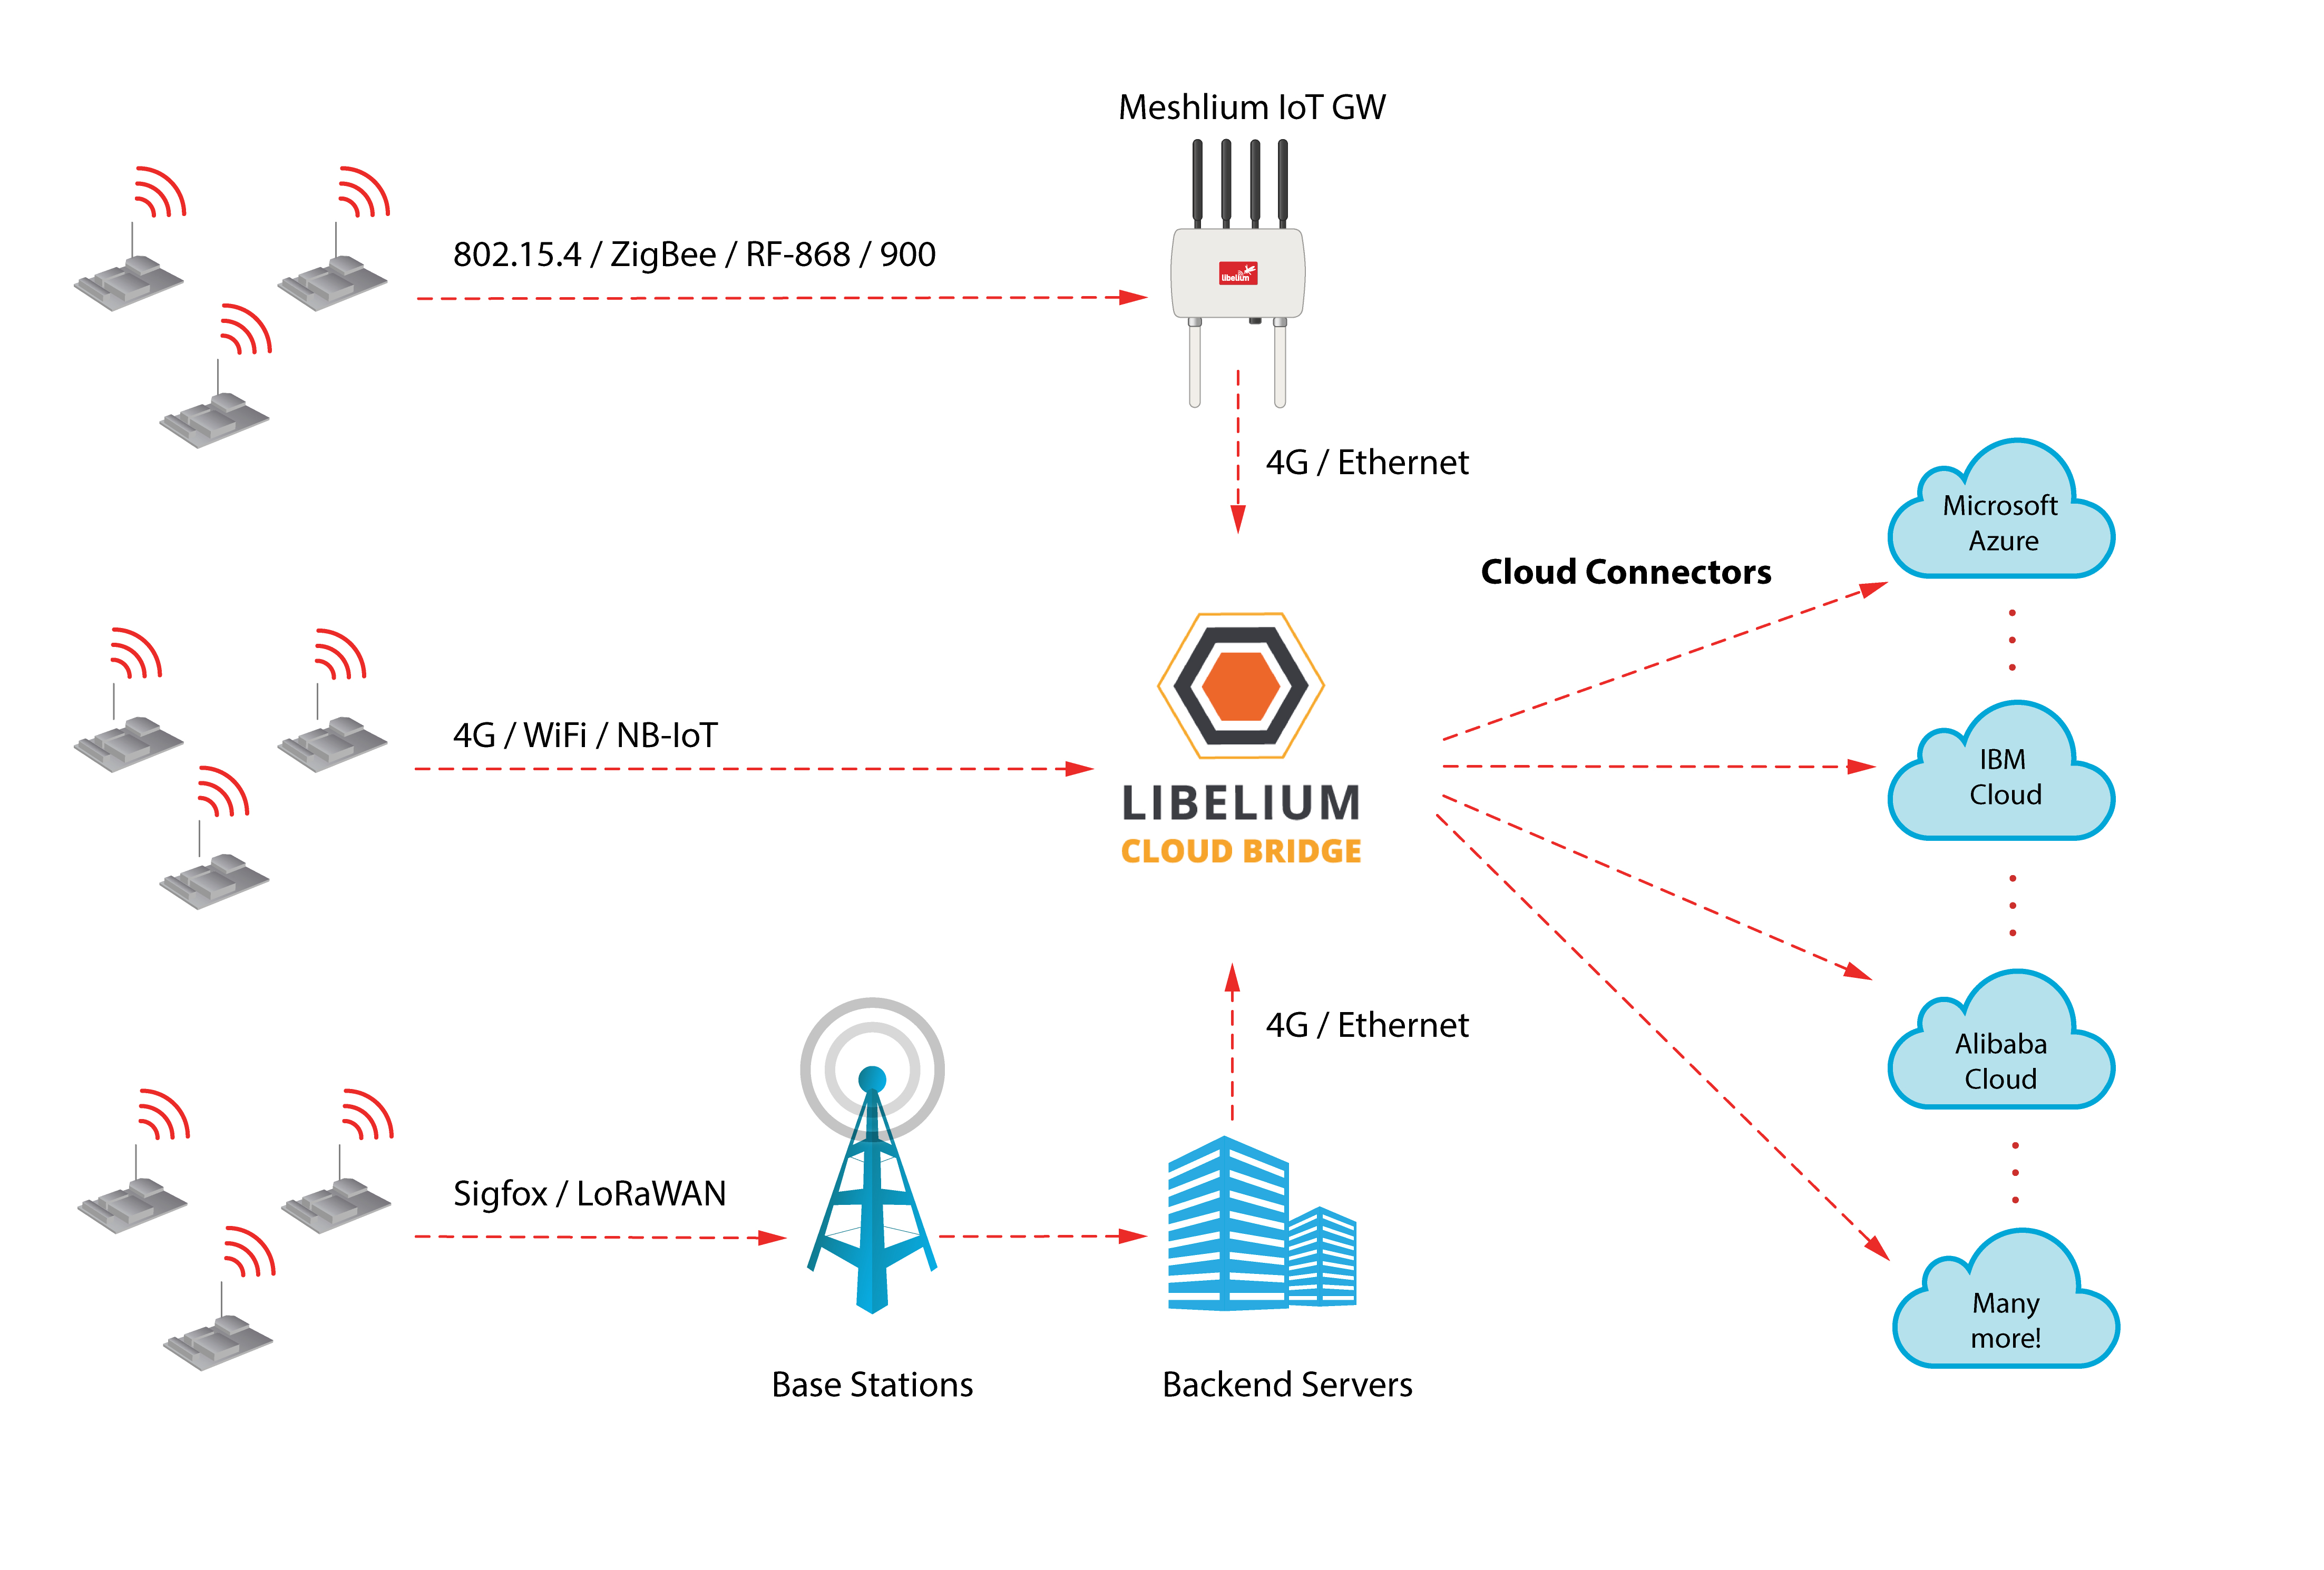 Libelium Cloud Bridge Connectivity Diagram